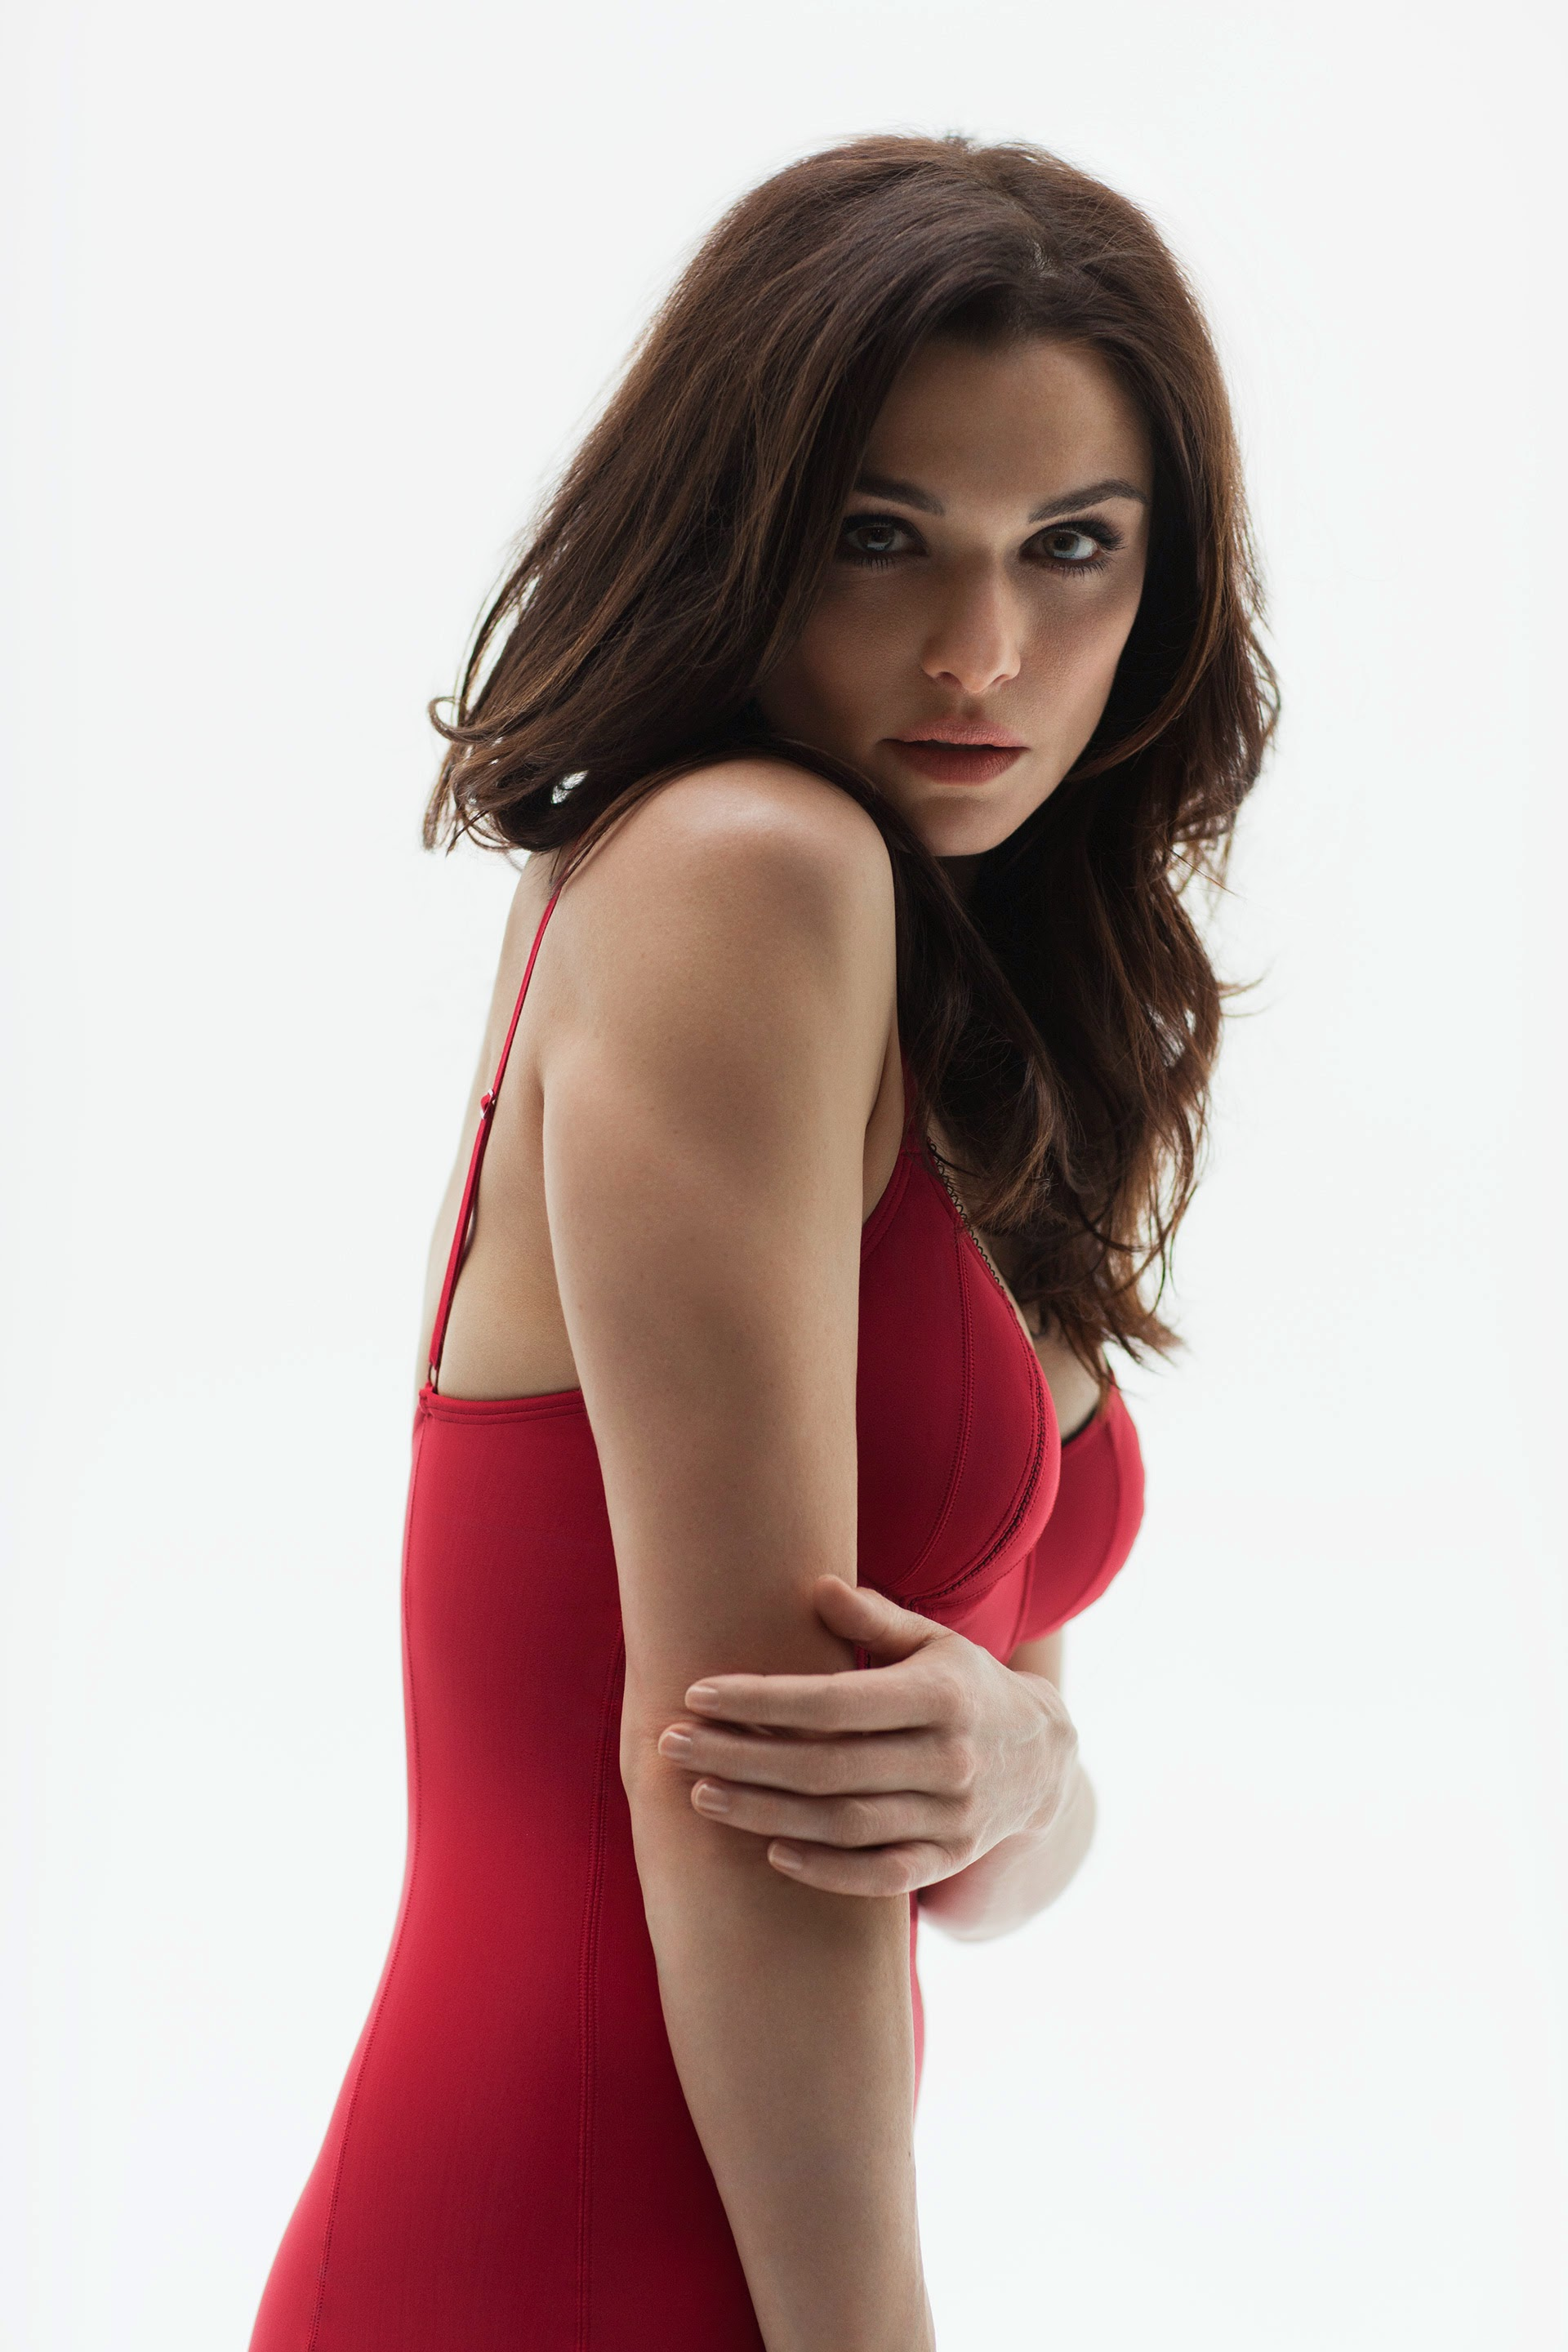 Body like rachel weisz nude 10,000 LIKES